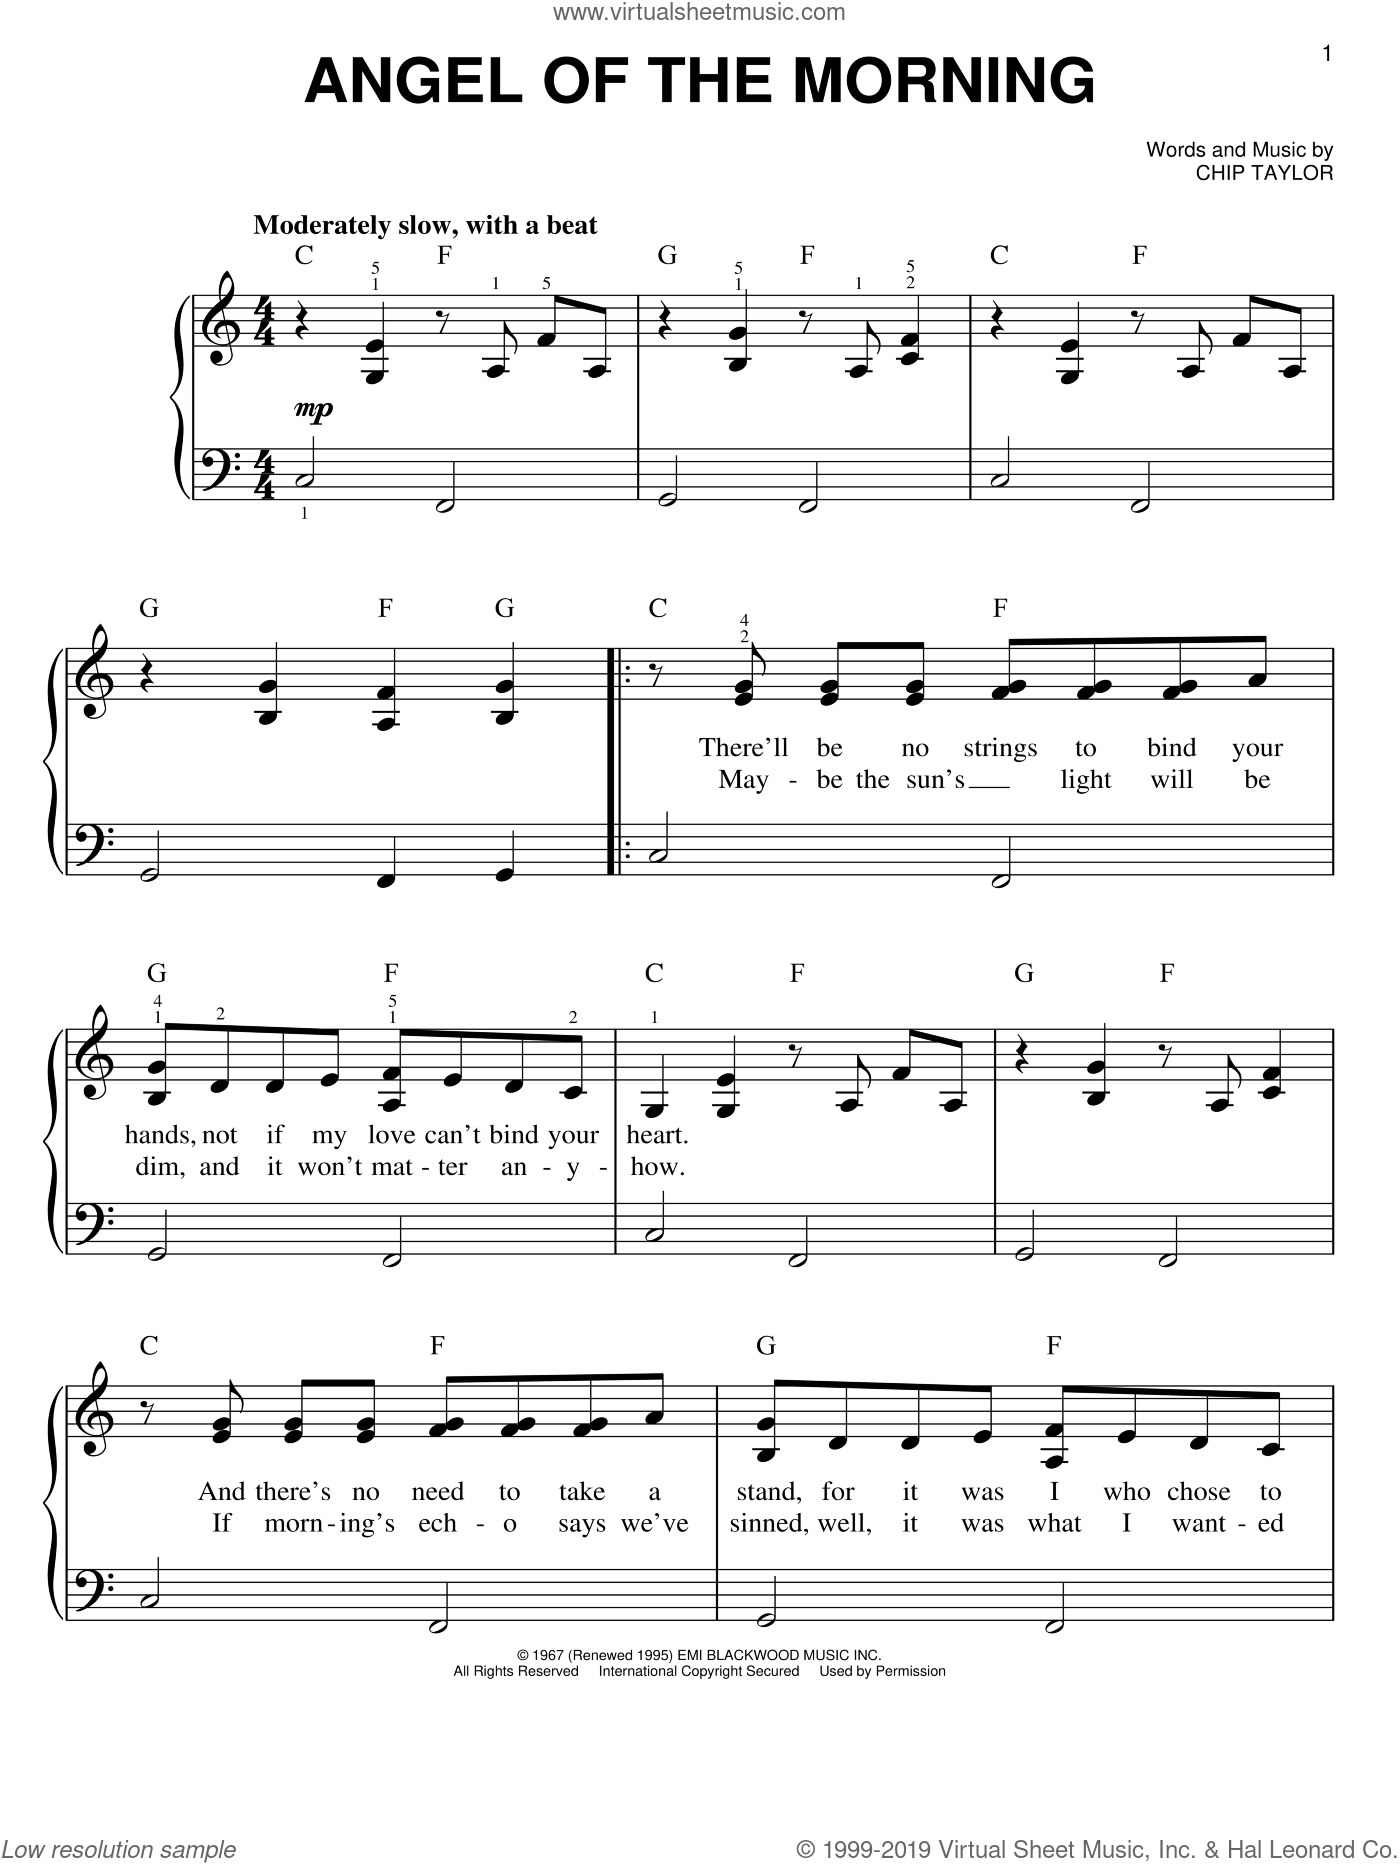 Angel Of The Morning sheet music for piano solo (chords) by Chip Taylor